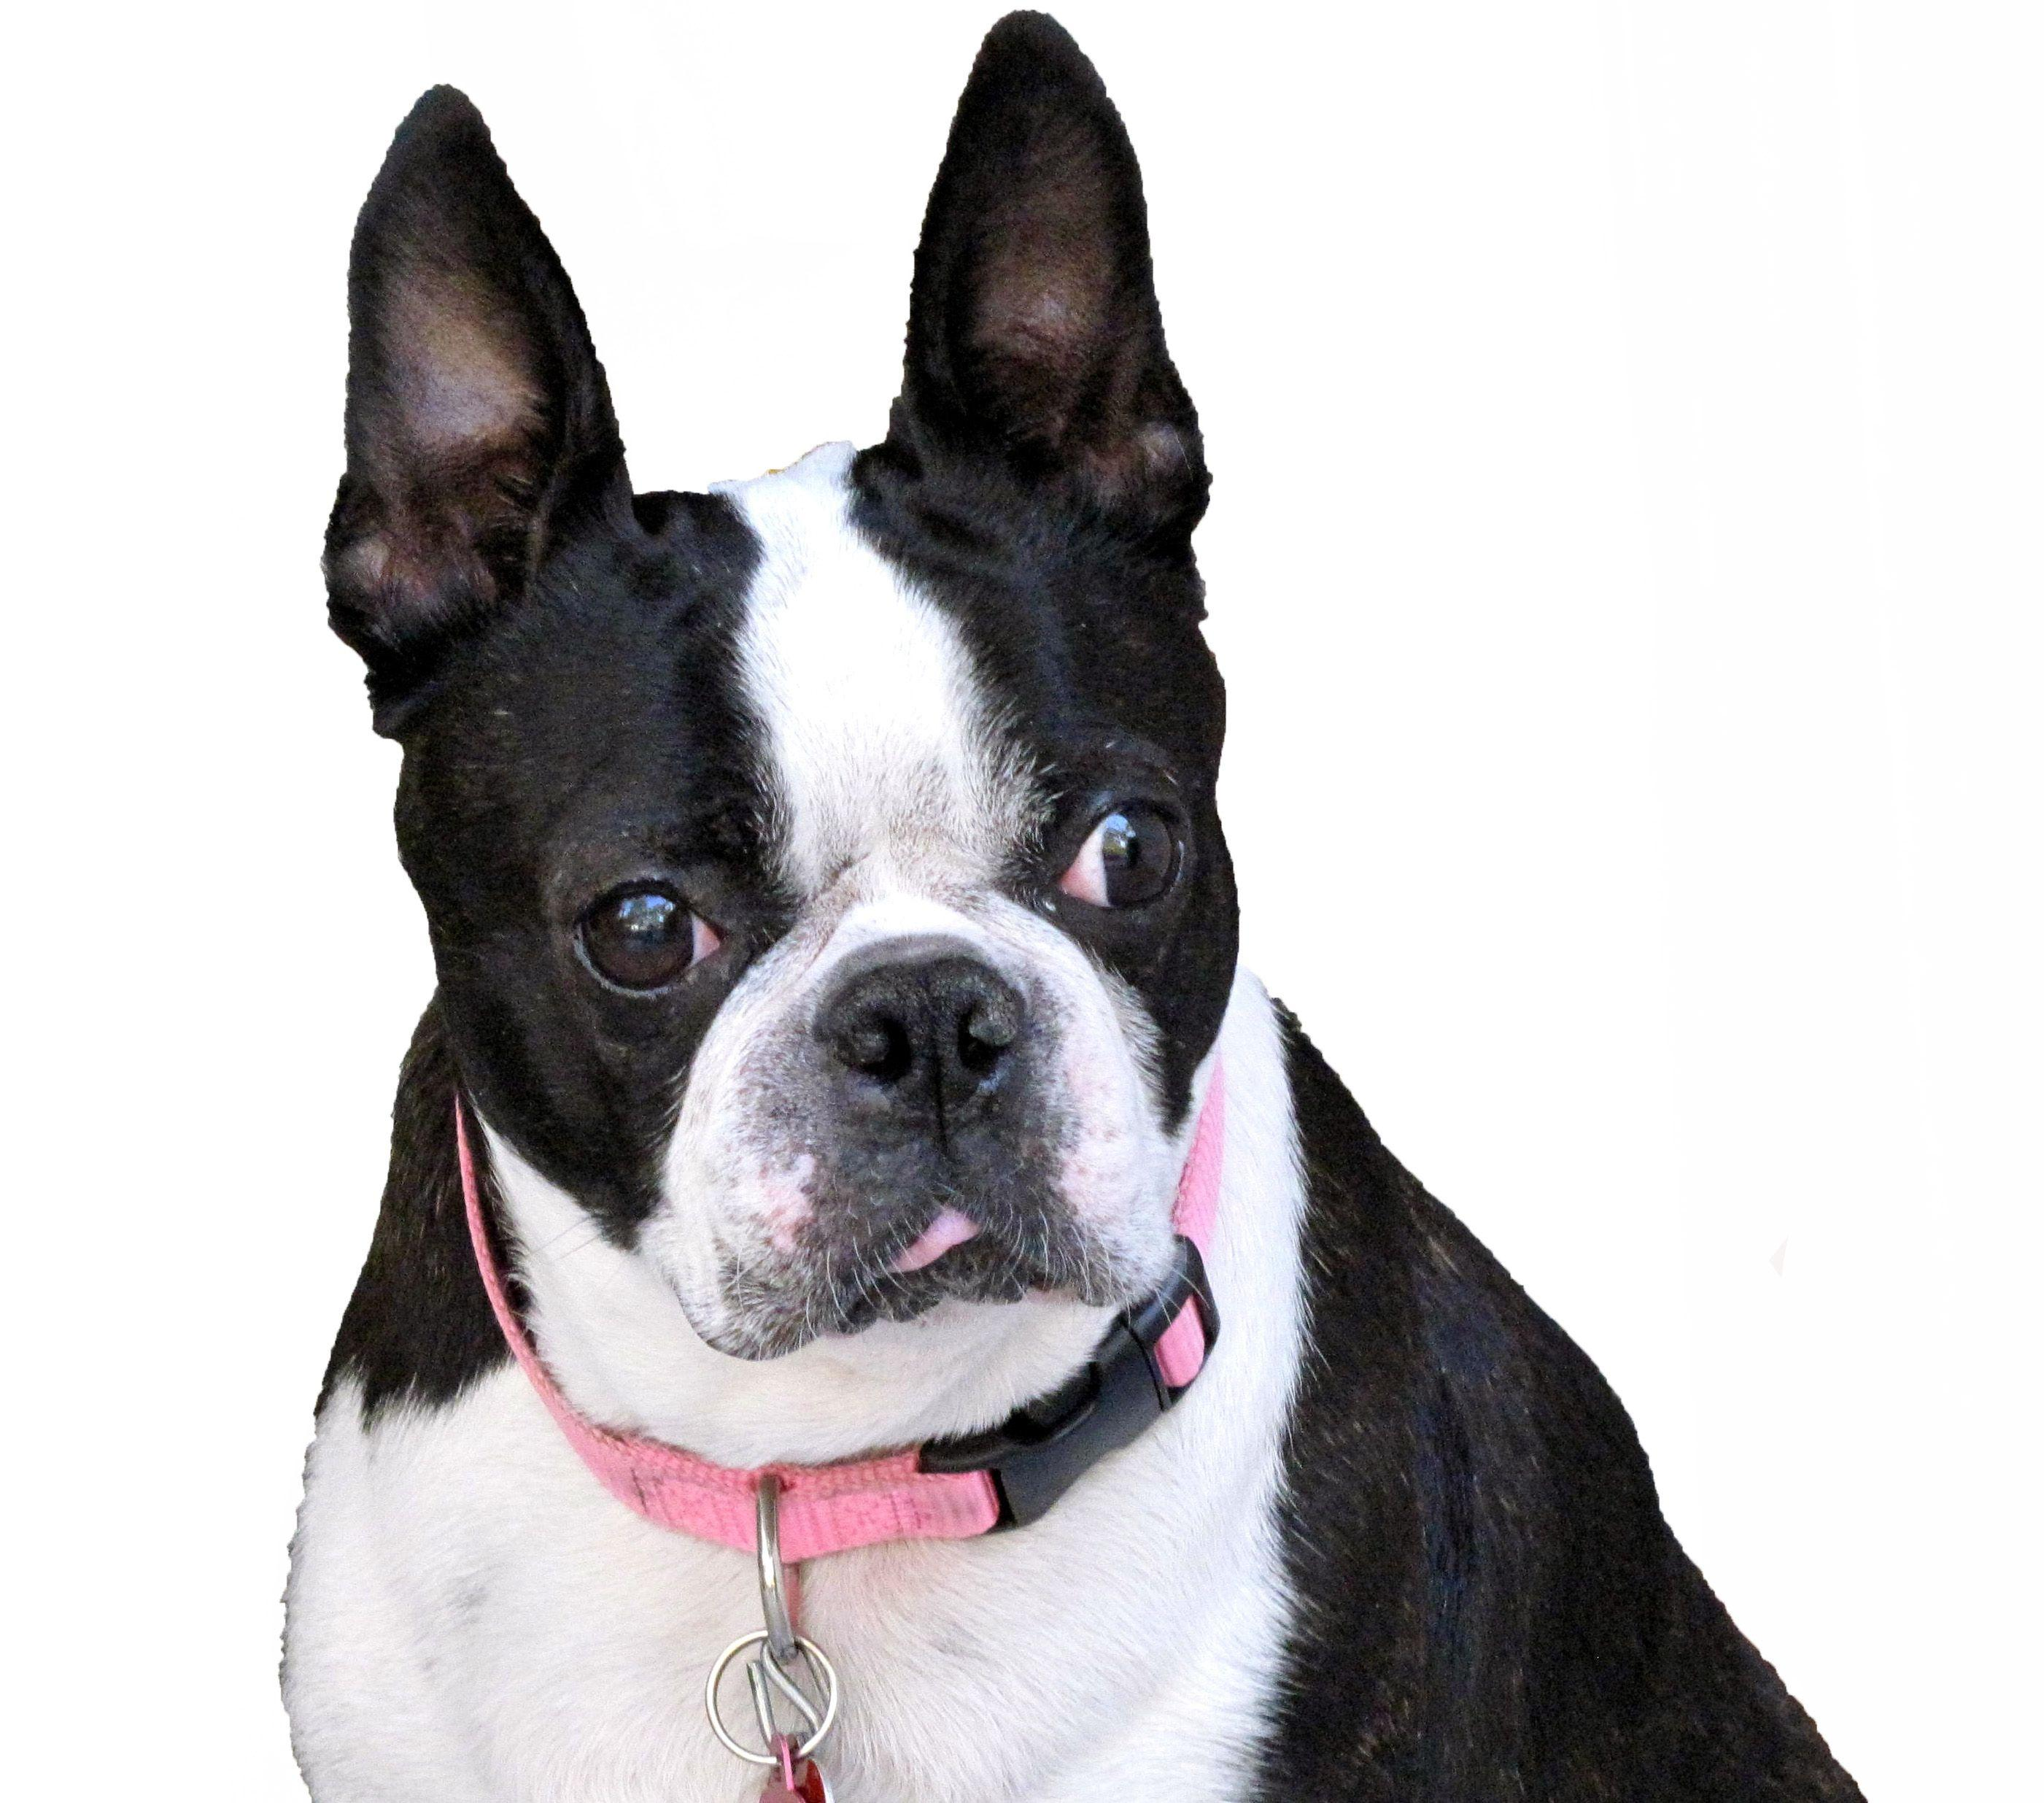 Wallpapers for Boston Terrier ⇔ Resolution 2802x2471